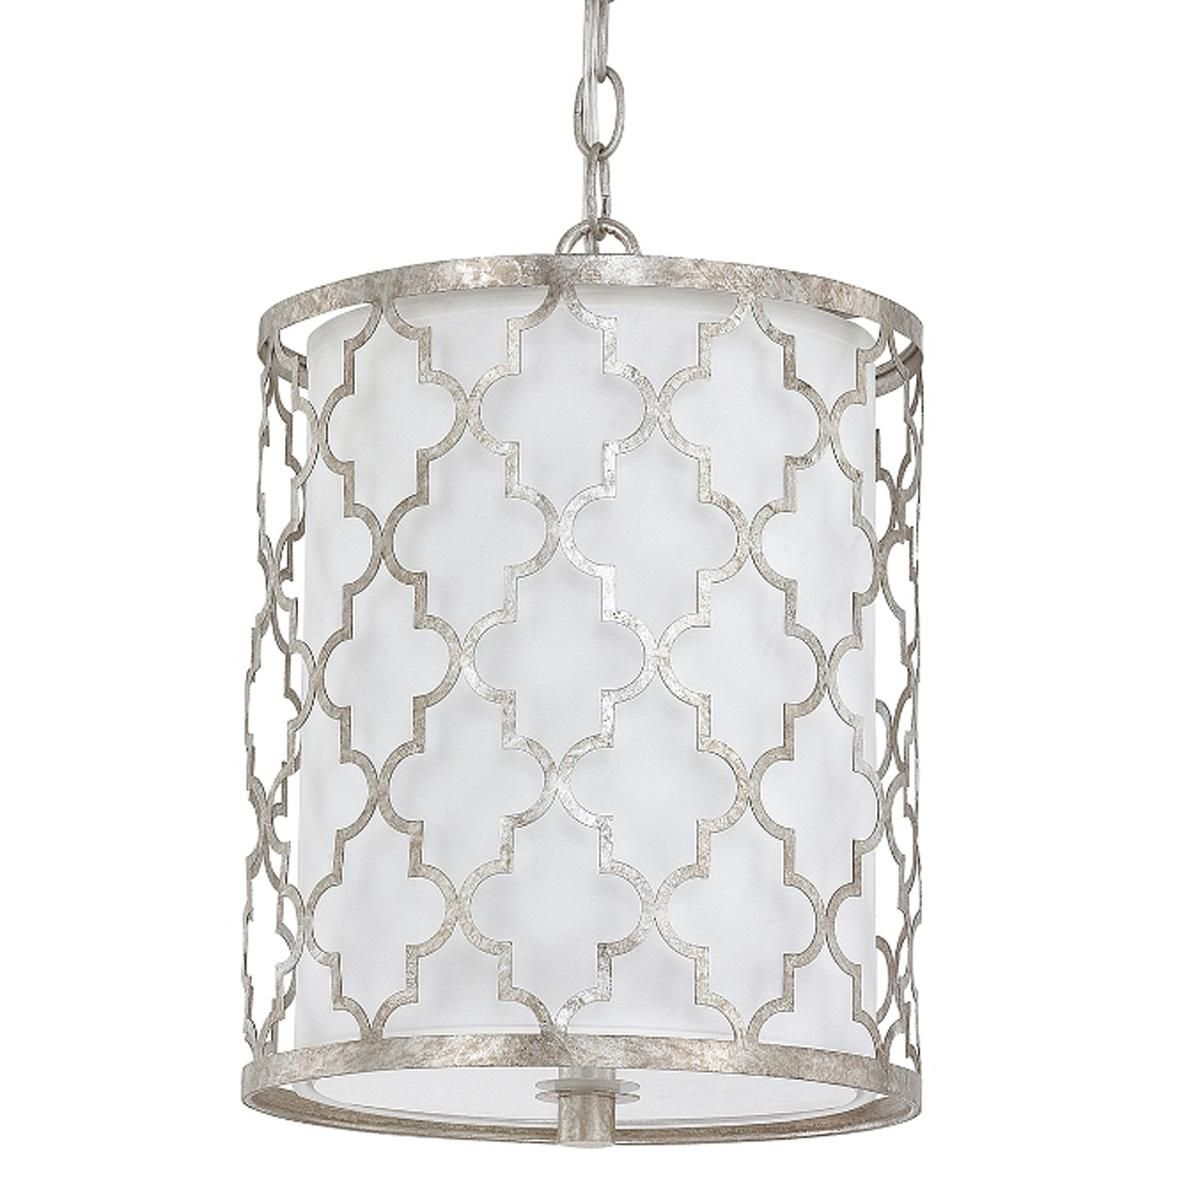 Quorum electra 8 light sputnik chandelier amp reviews wayfair - Contempo Arabesque Mini Pendant